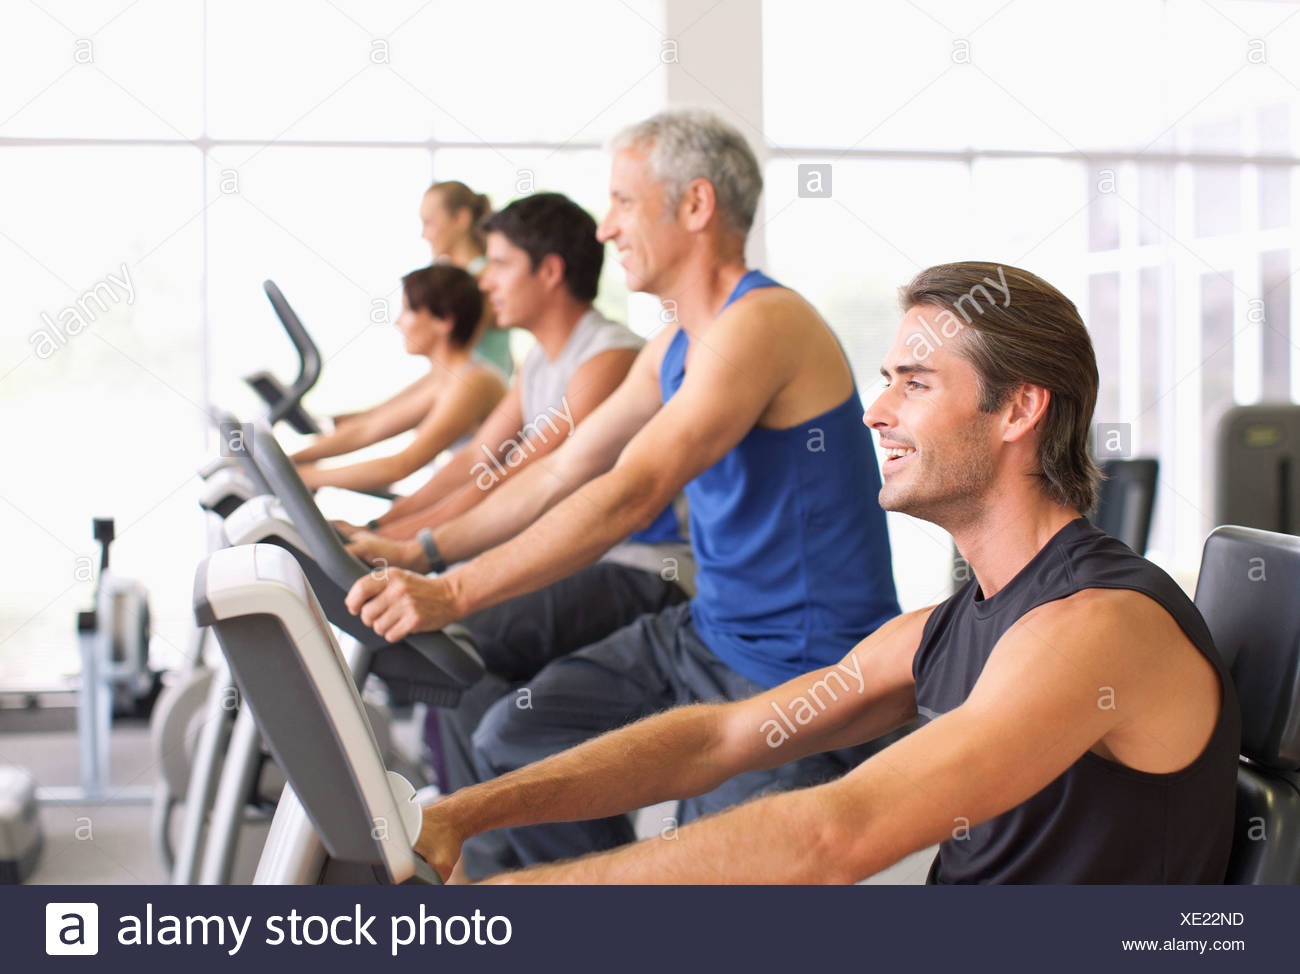 People working out on exercise machines in gymnasium Stock Photo